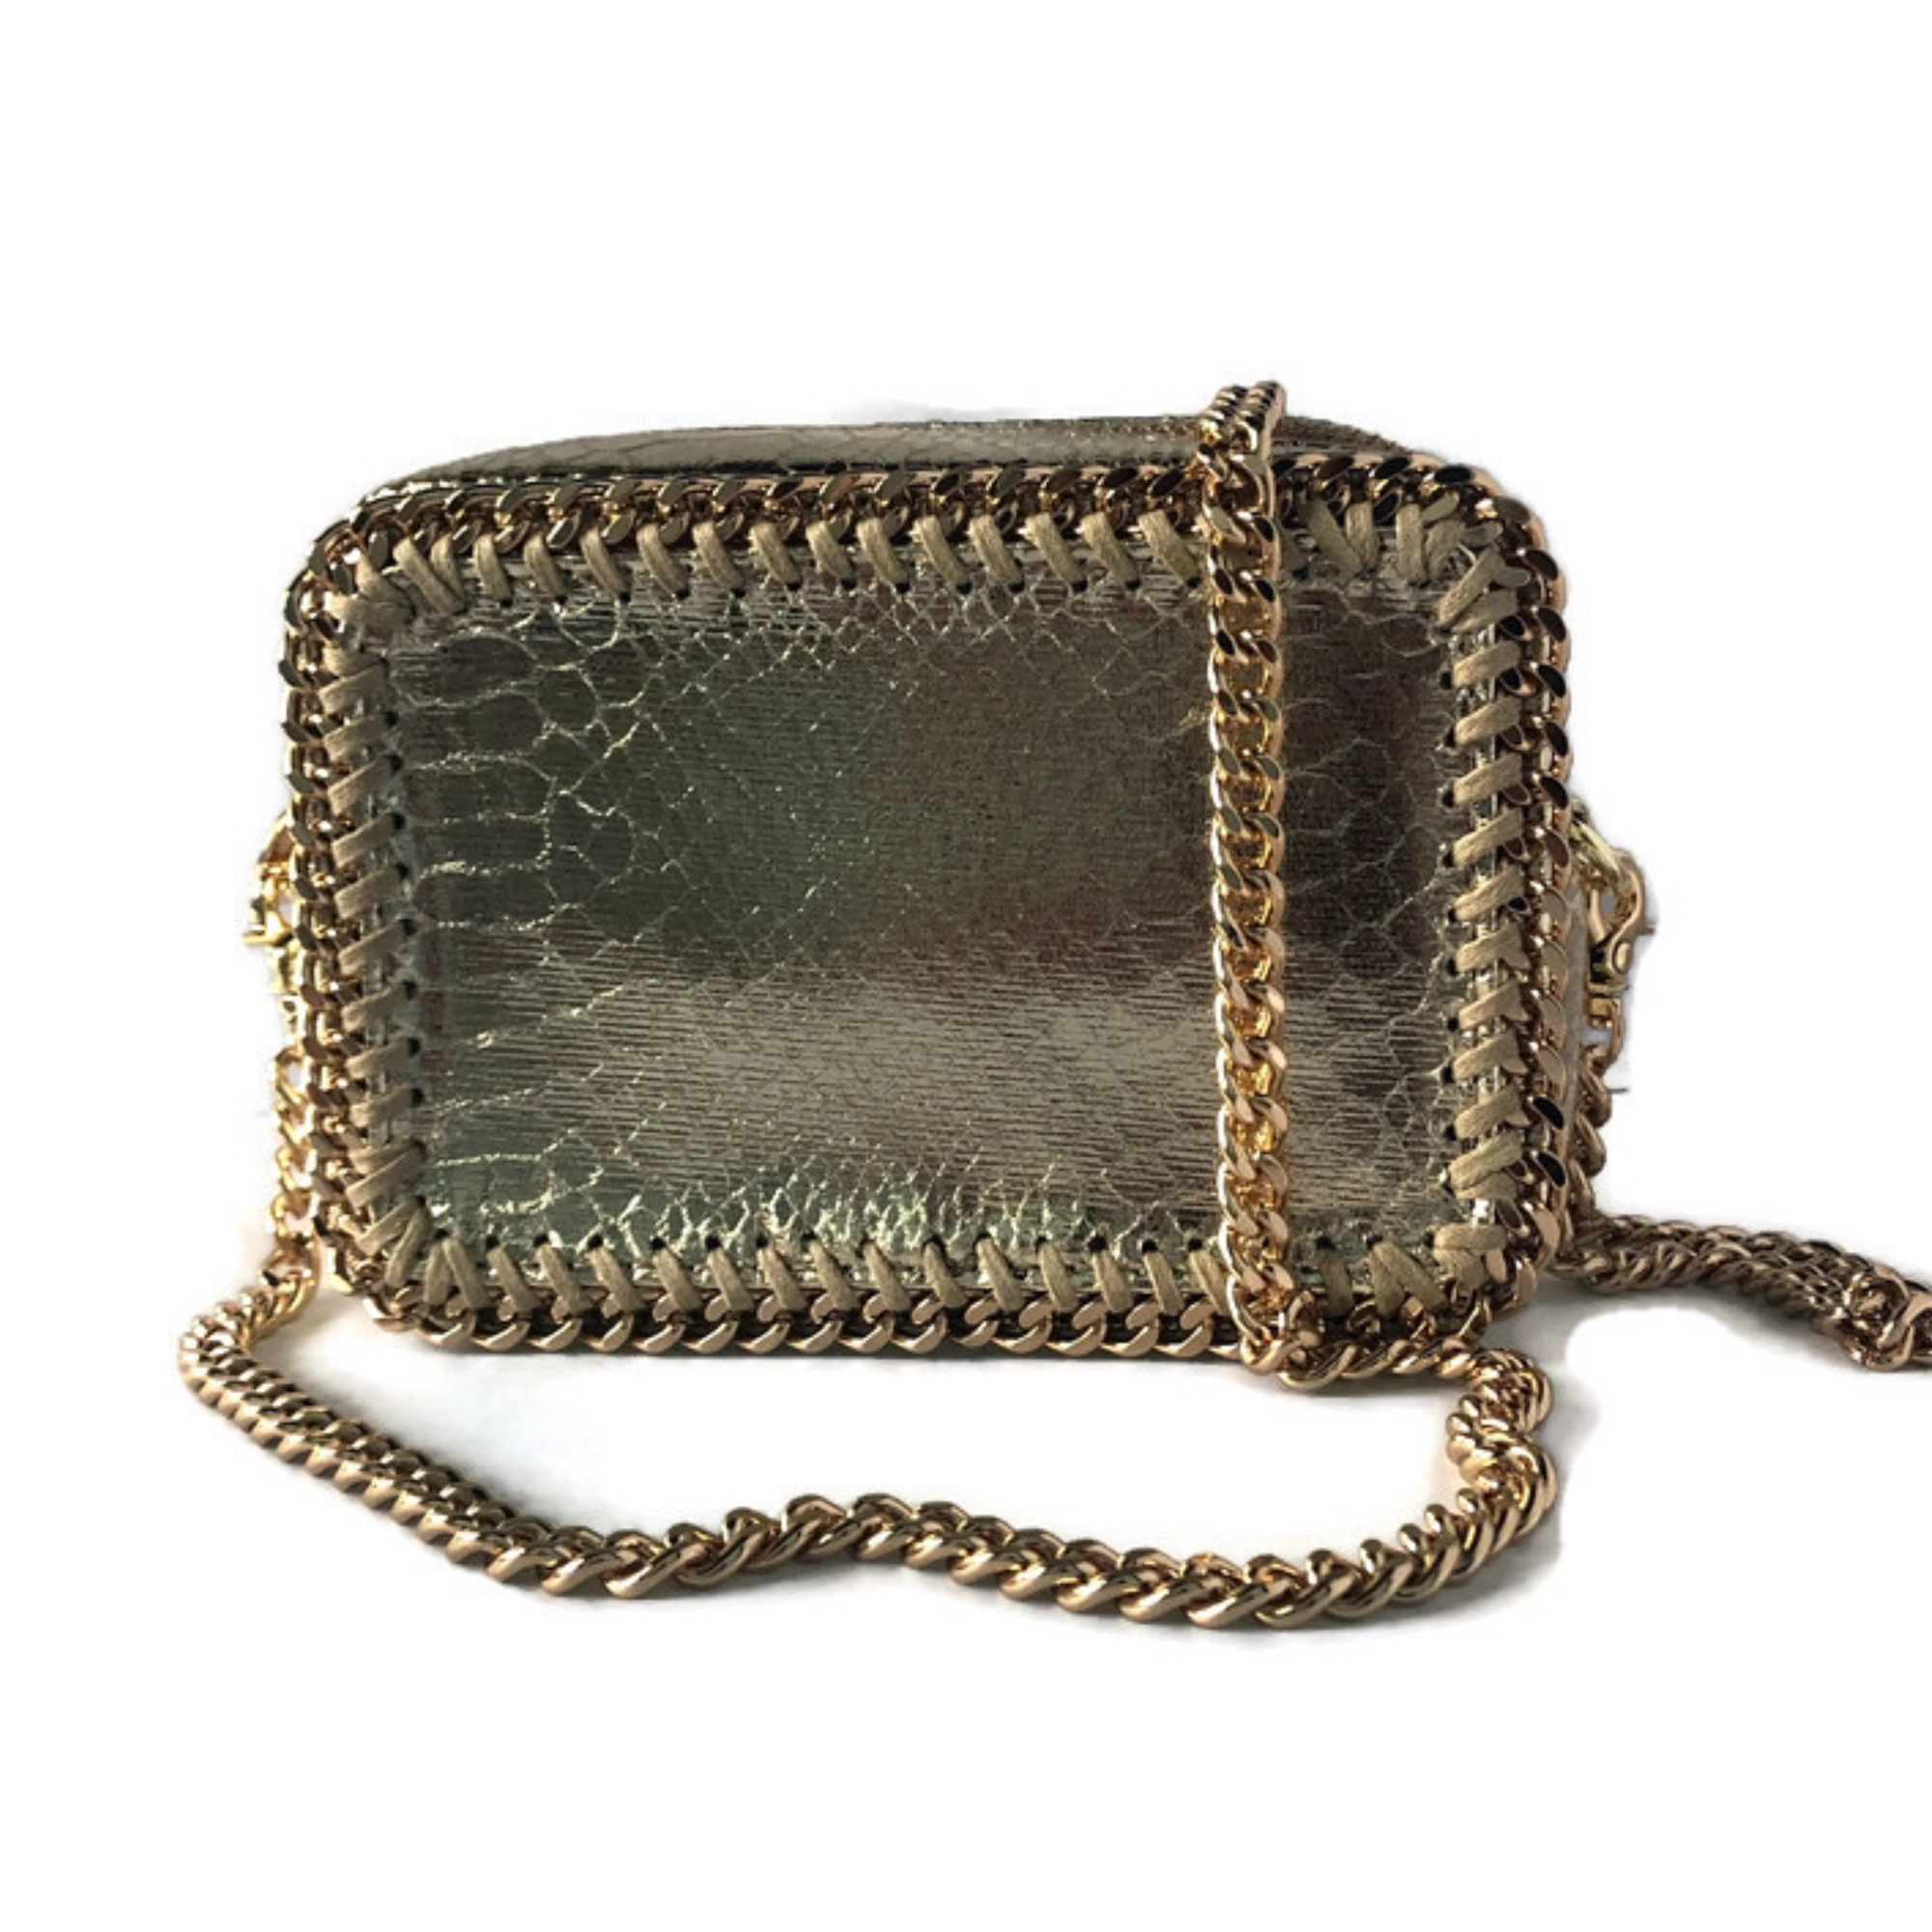 the LocoMoto Crossbody | Serpent Shine